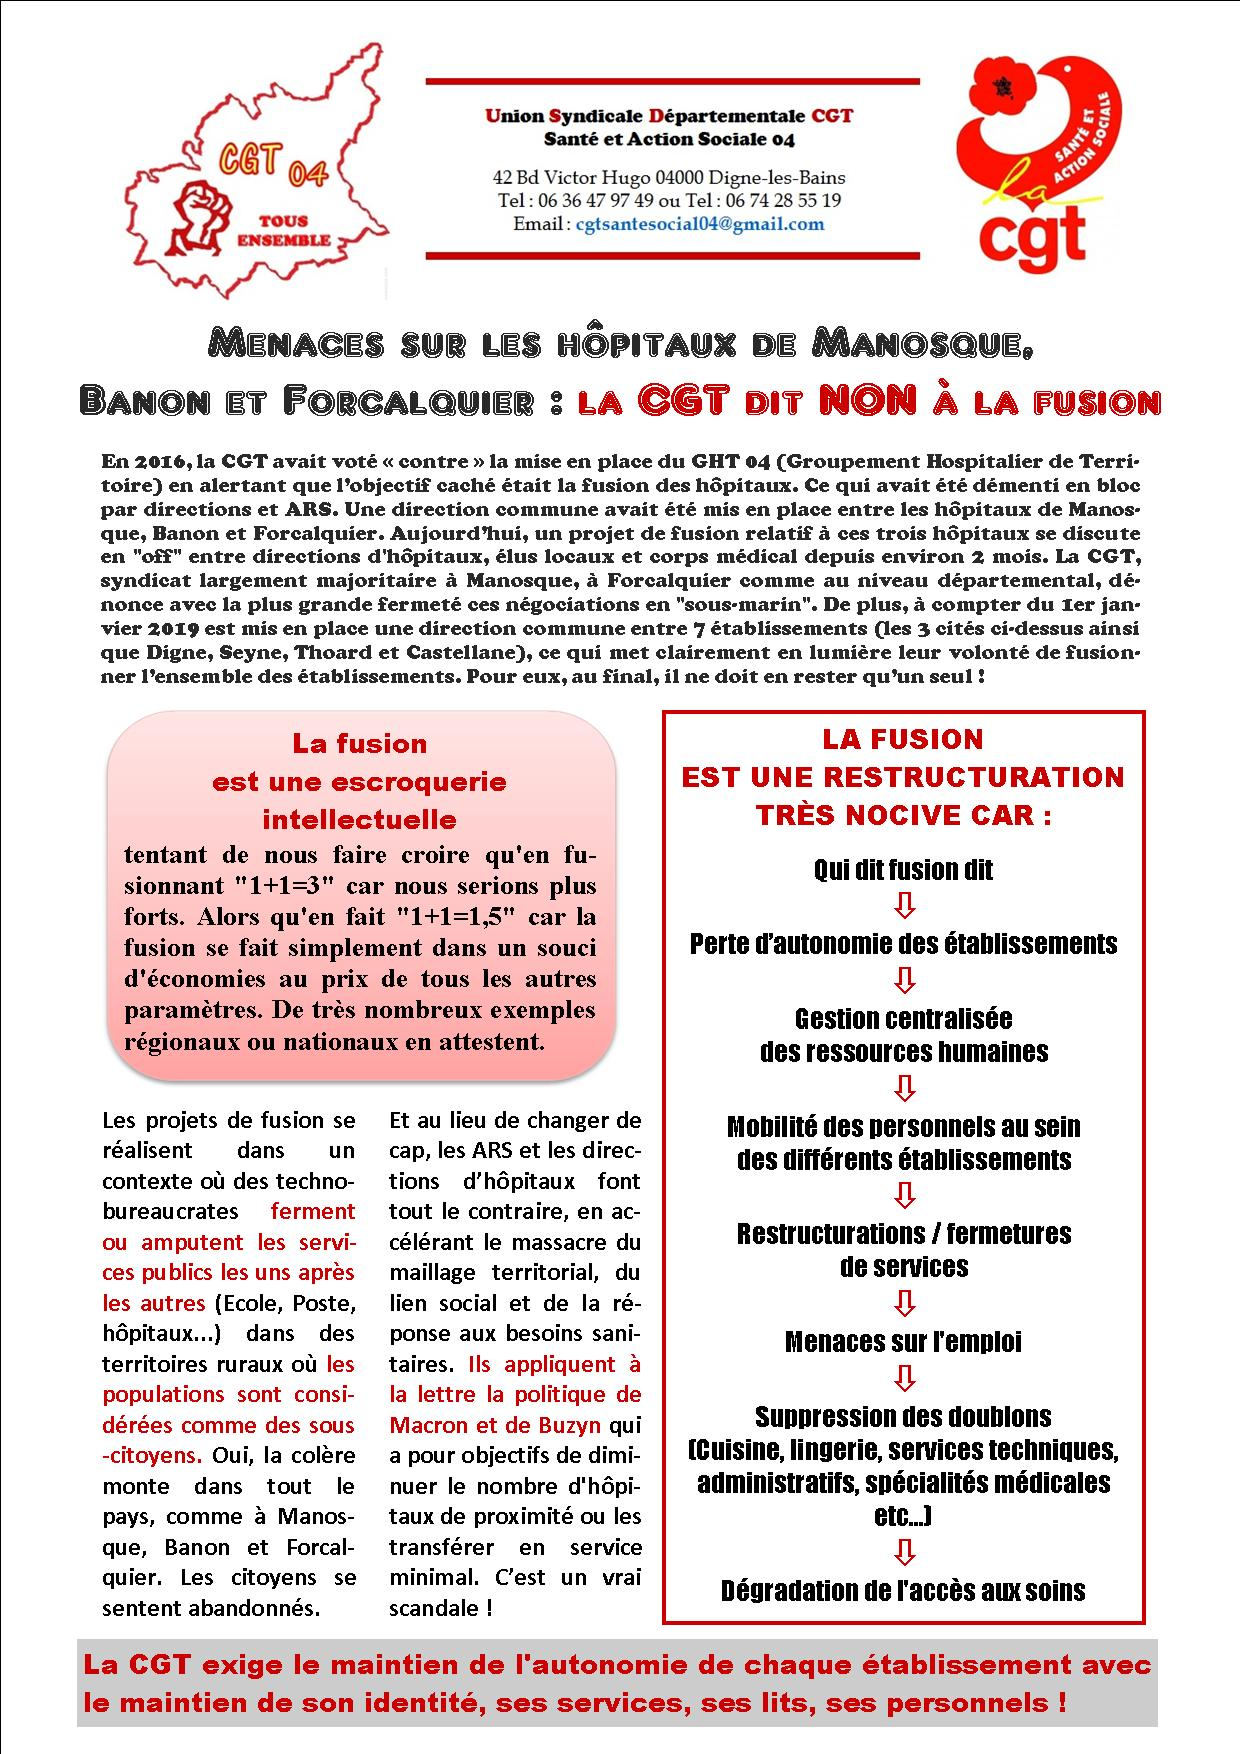 Menace de fusion hôpital Manosque Banon Forcalquier (1)